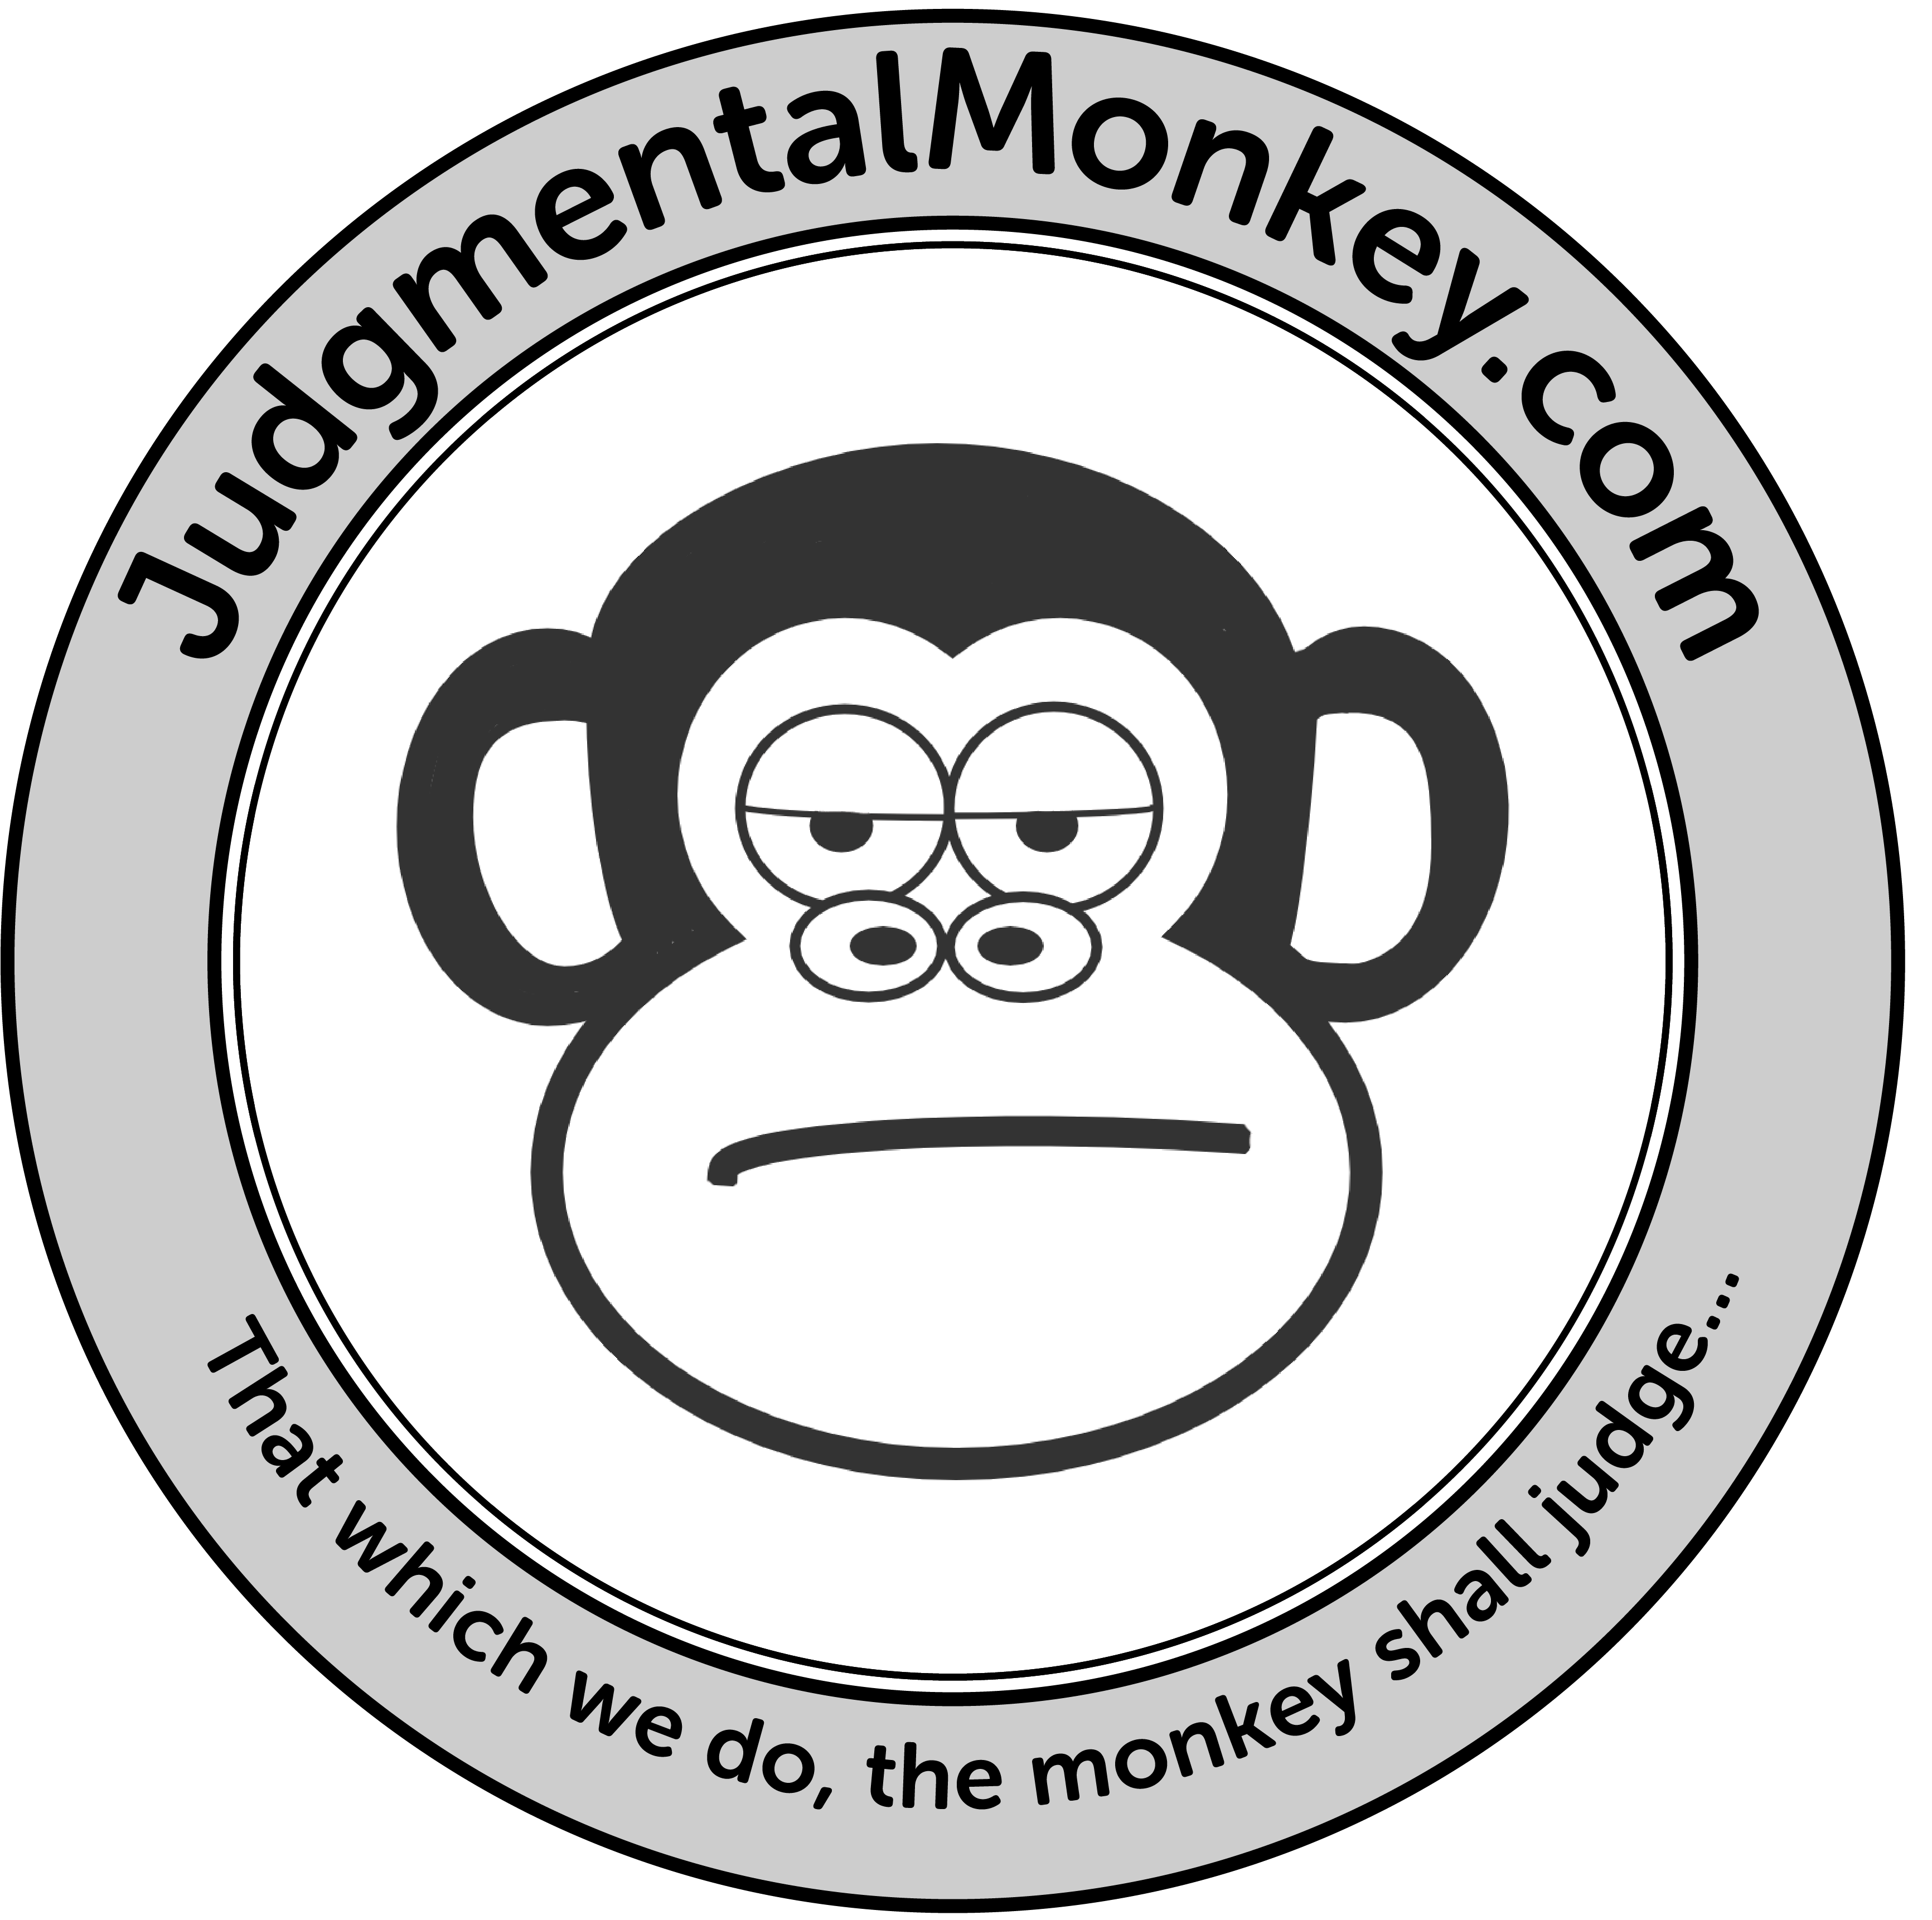 The Judgmental Monkey